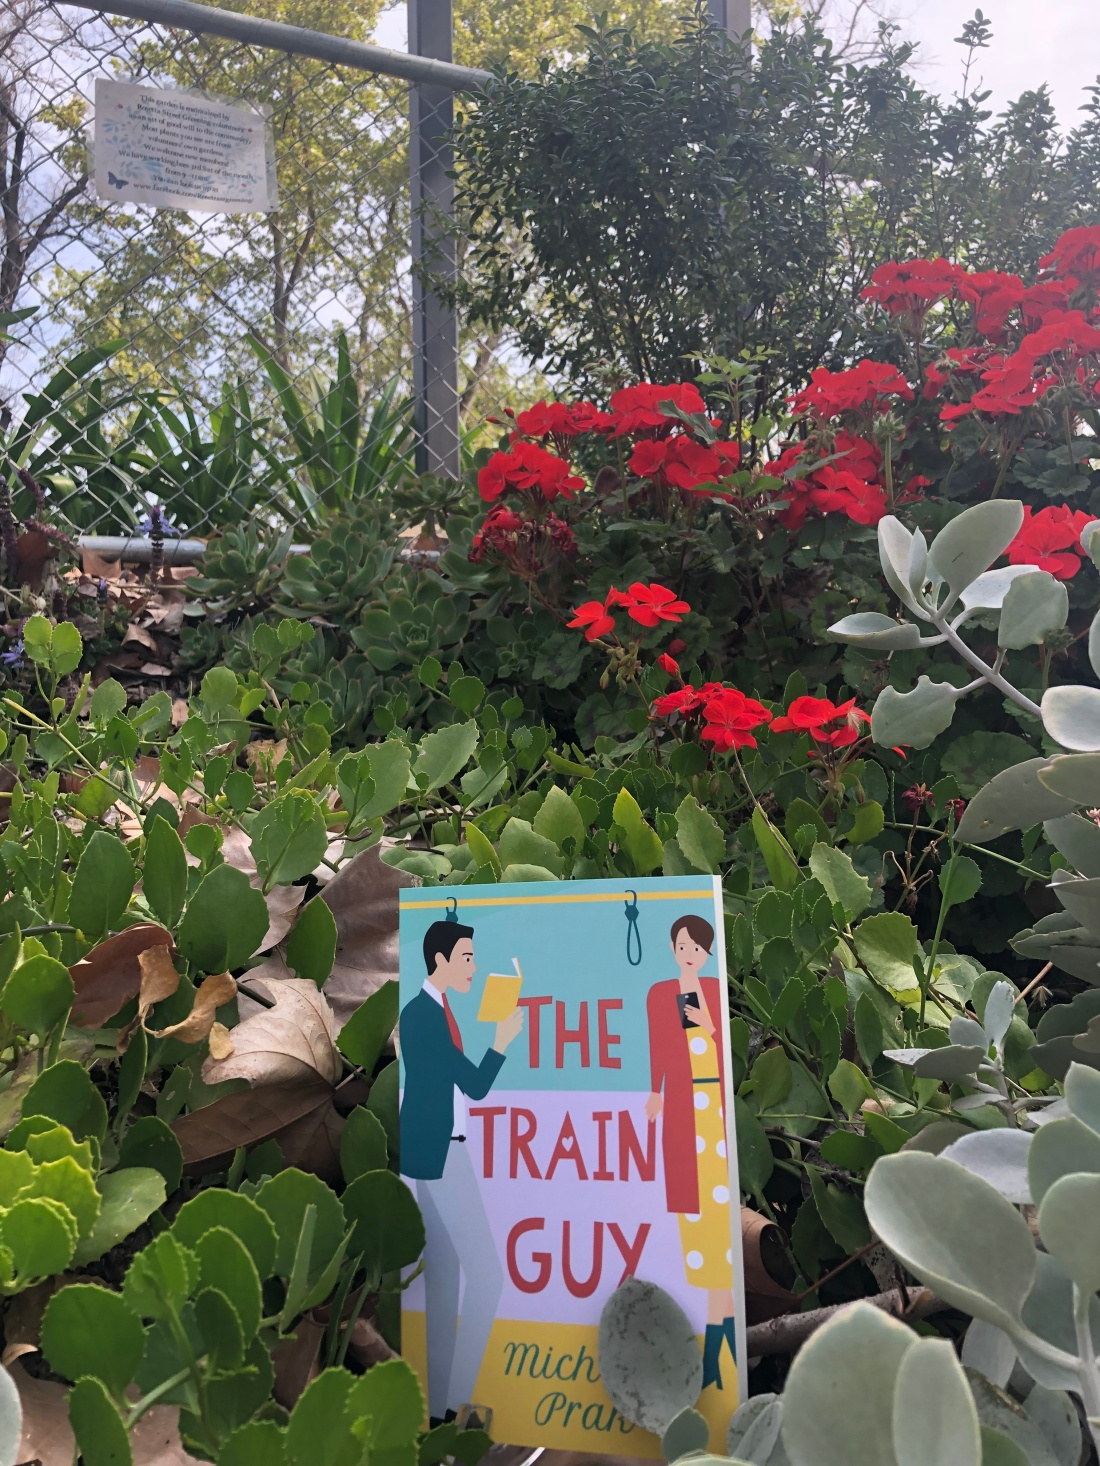 The Train Guy novel in train station greenery